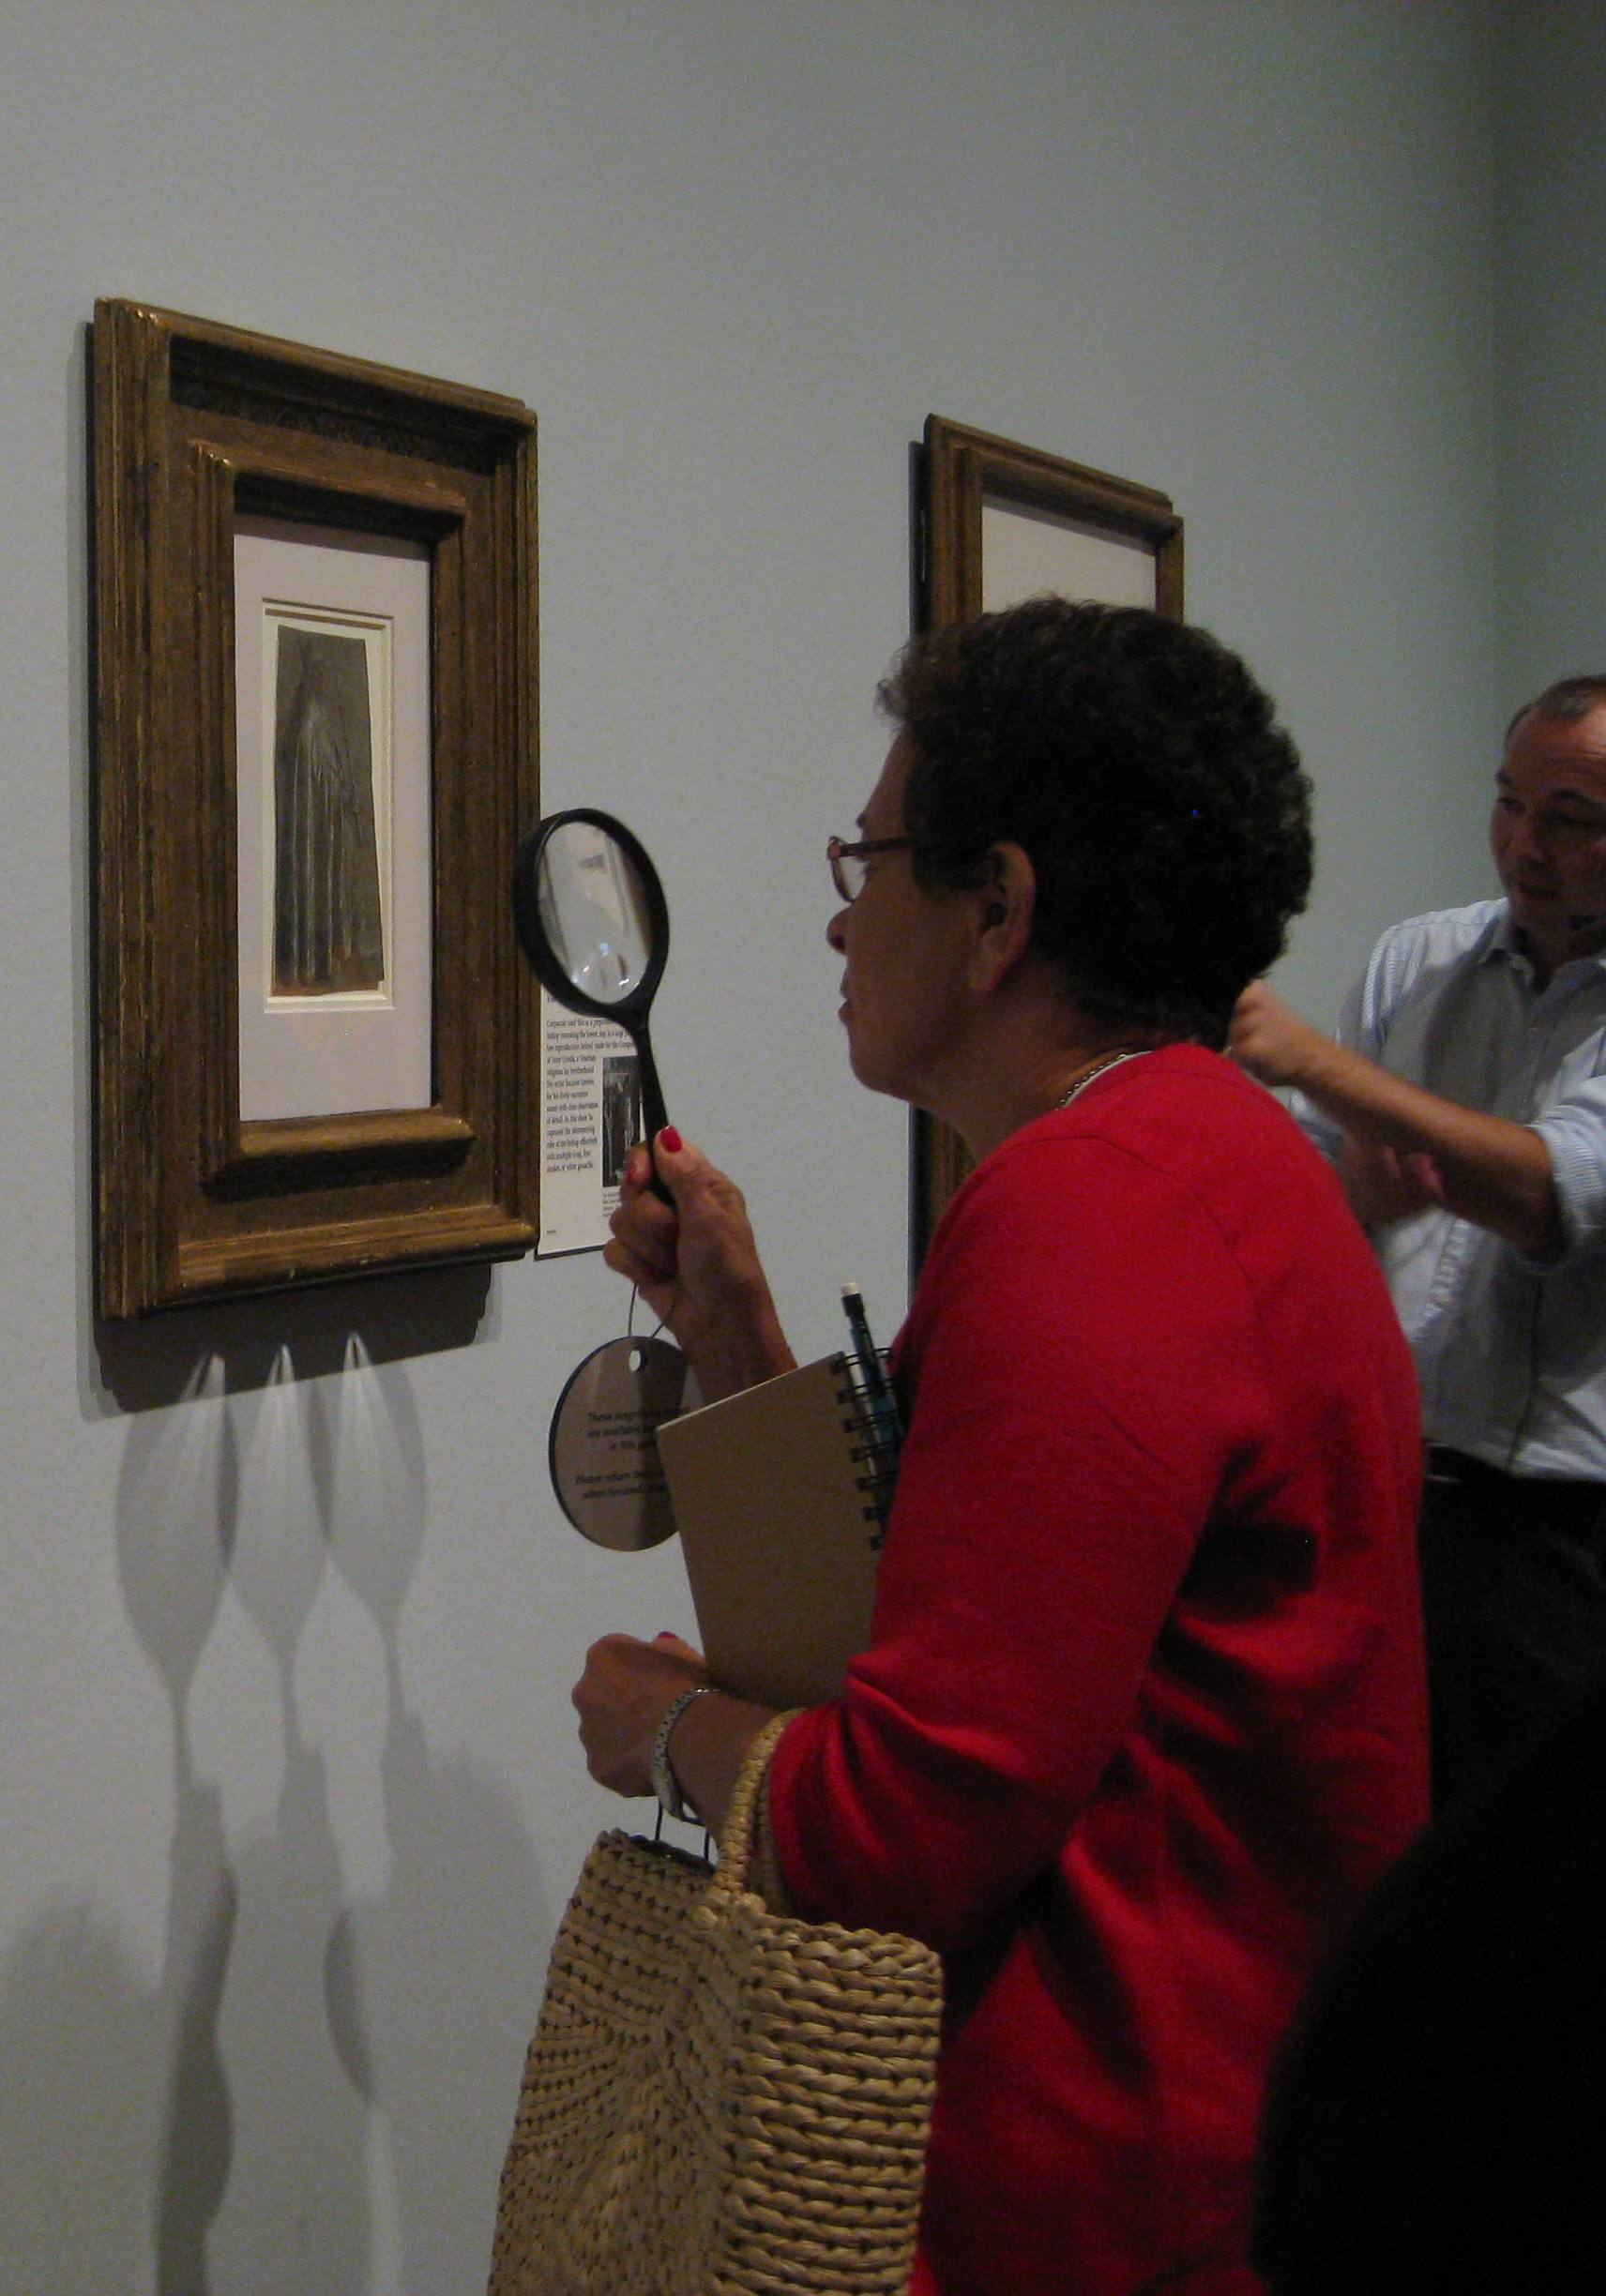 Magnifying lenses in the galleries offered us a closer look at details drawn by Renaissance artists.